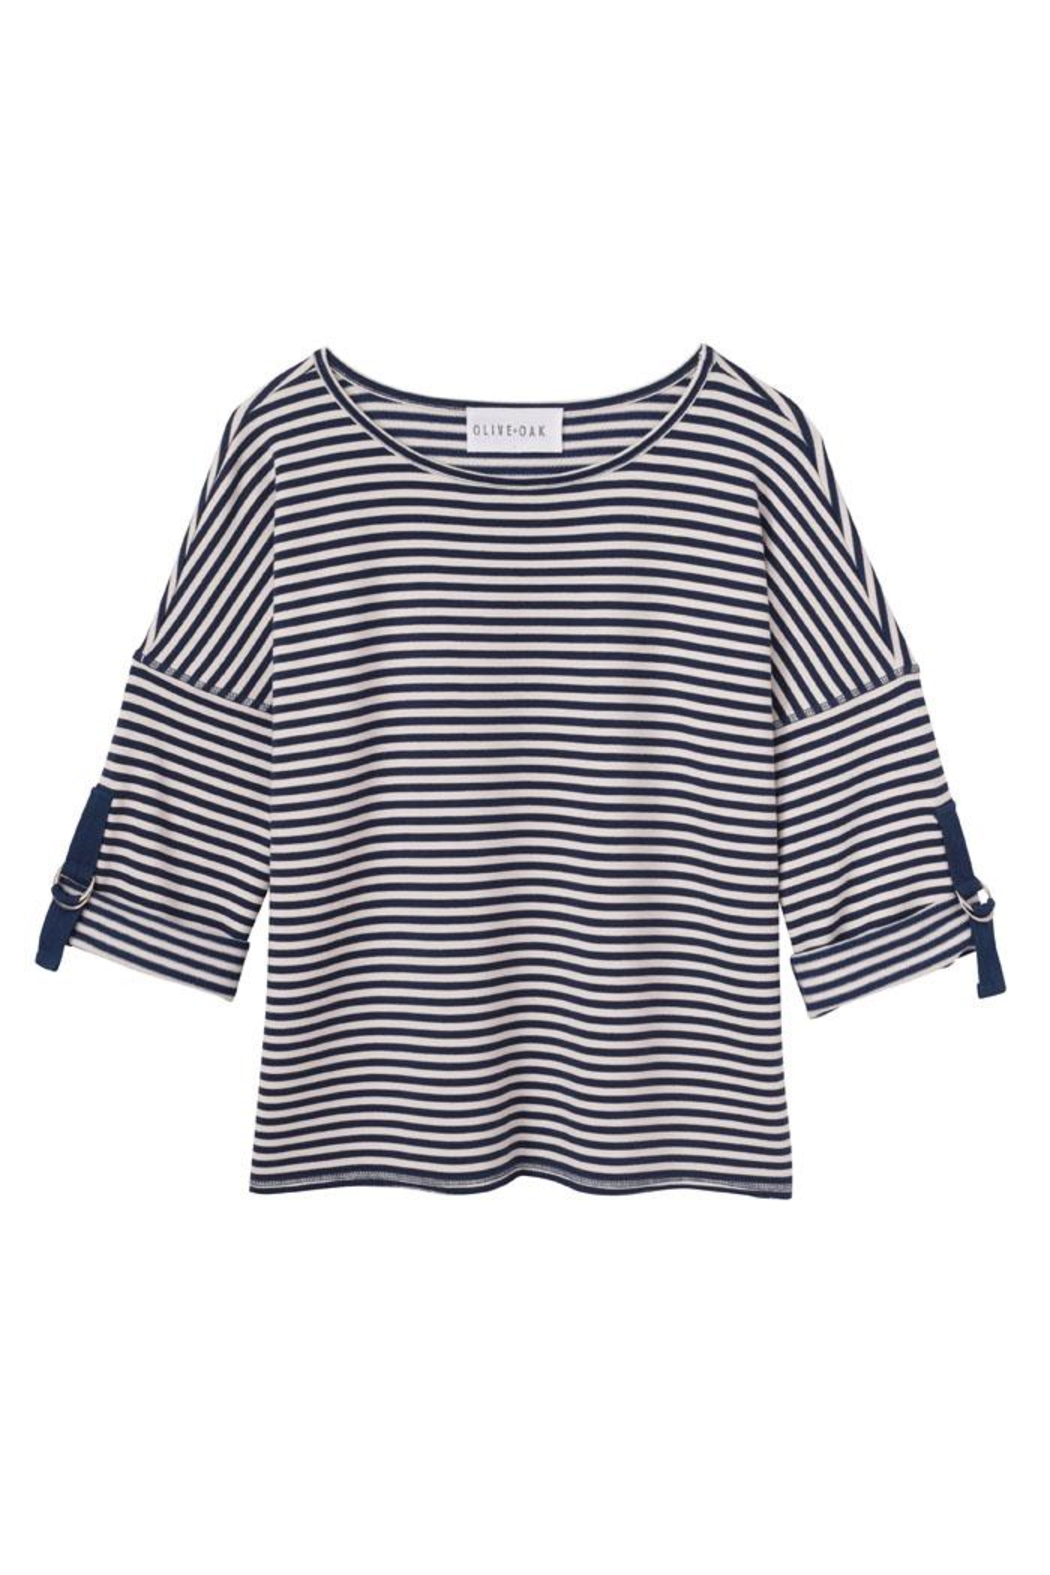 Olive and Oak Striped Top - Main Image